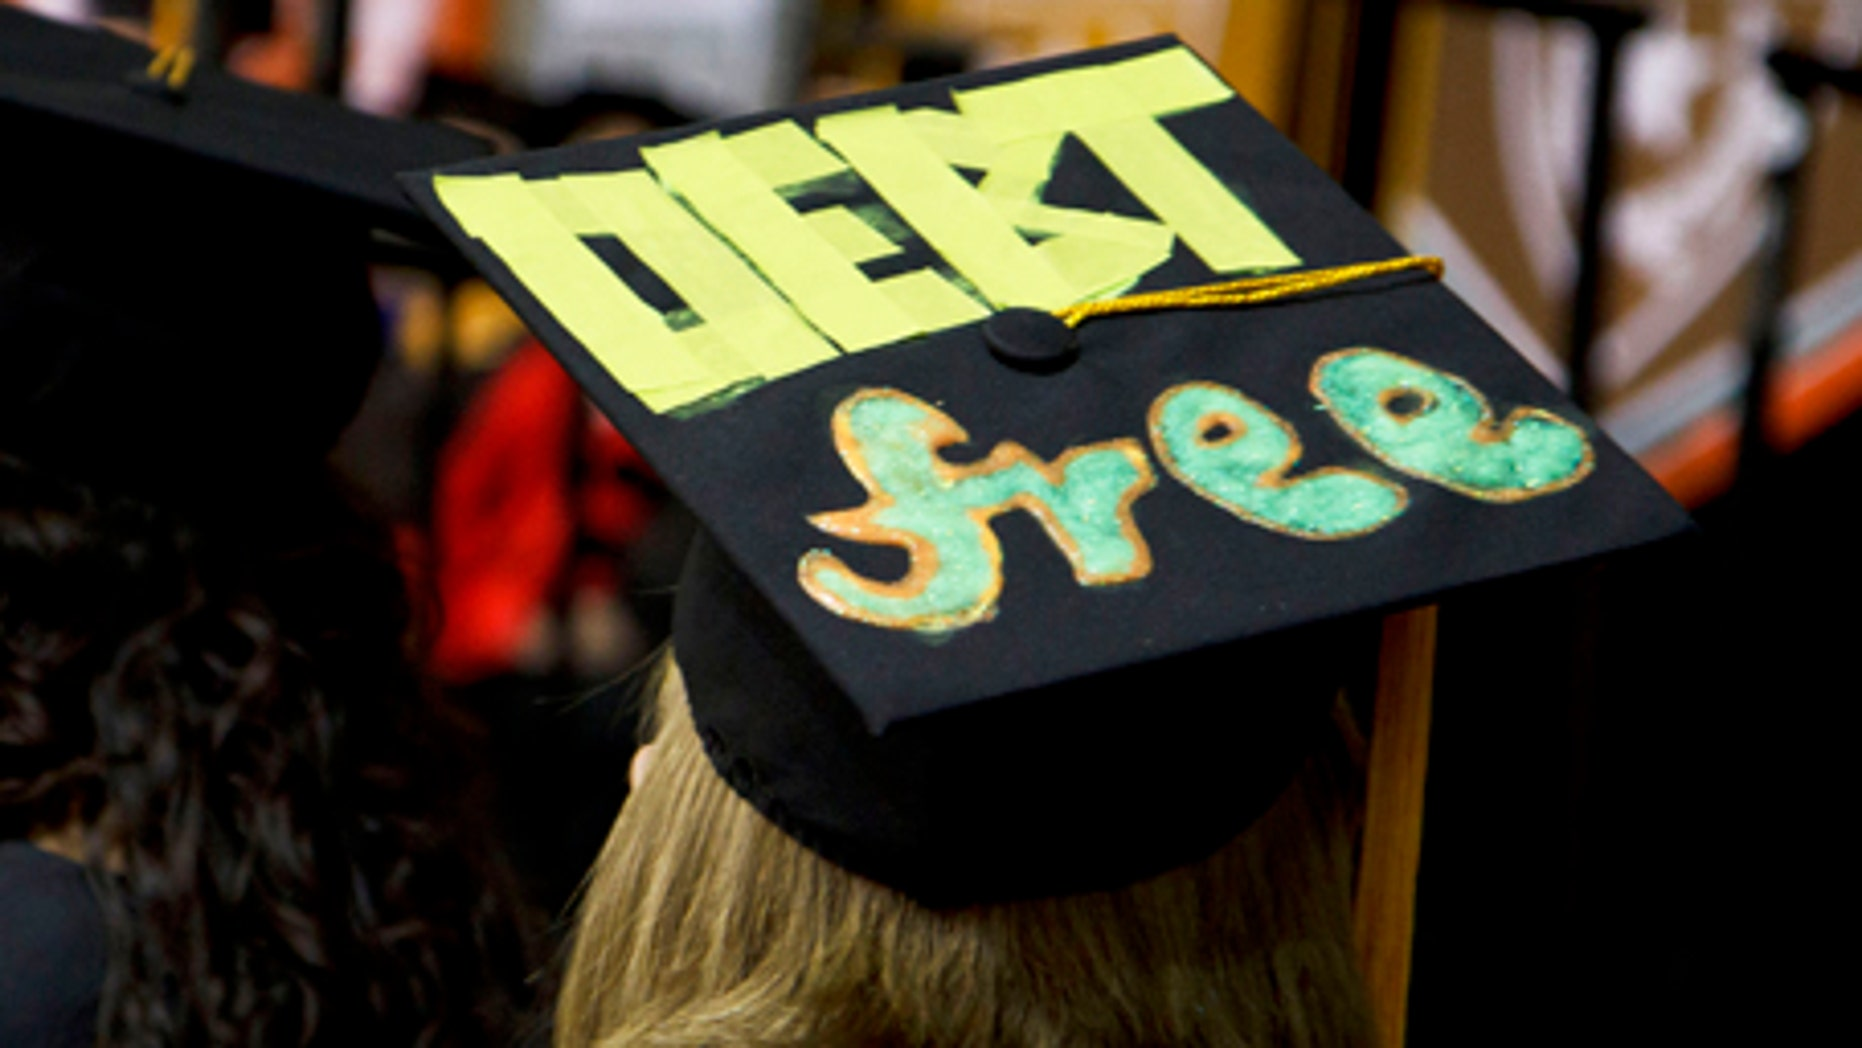 This 2014 photo provided by The University of Texas at Dallas shows, a cap worn by a student at her graduation.